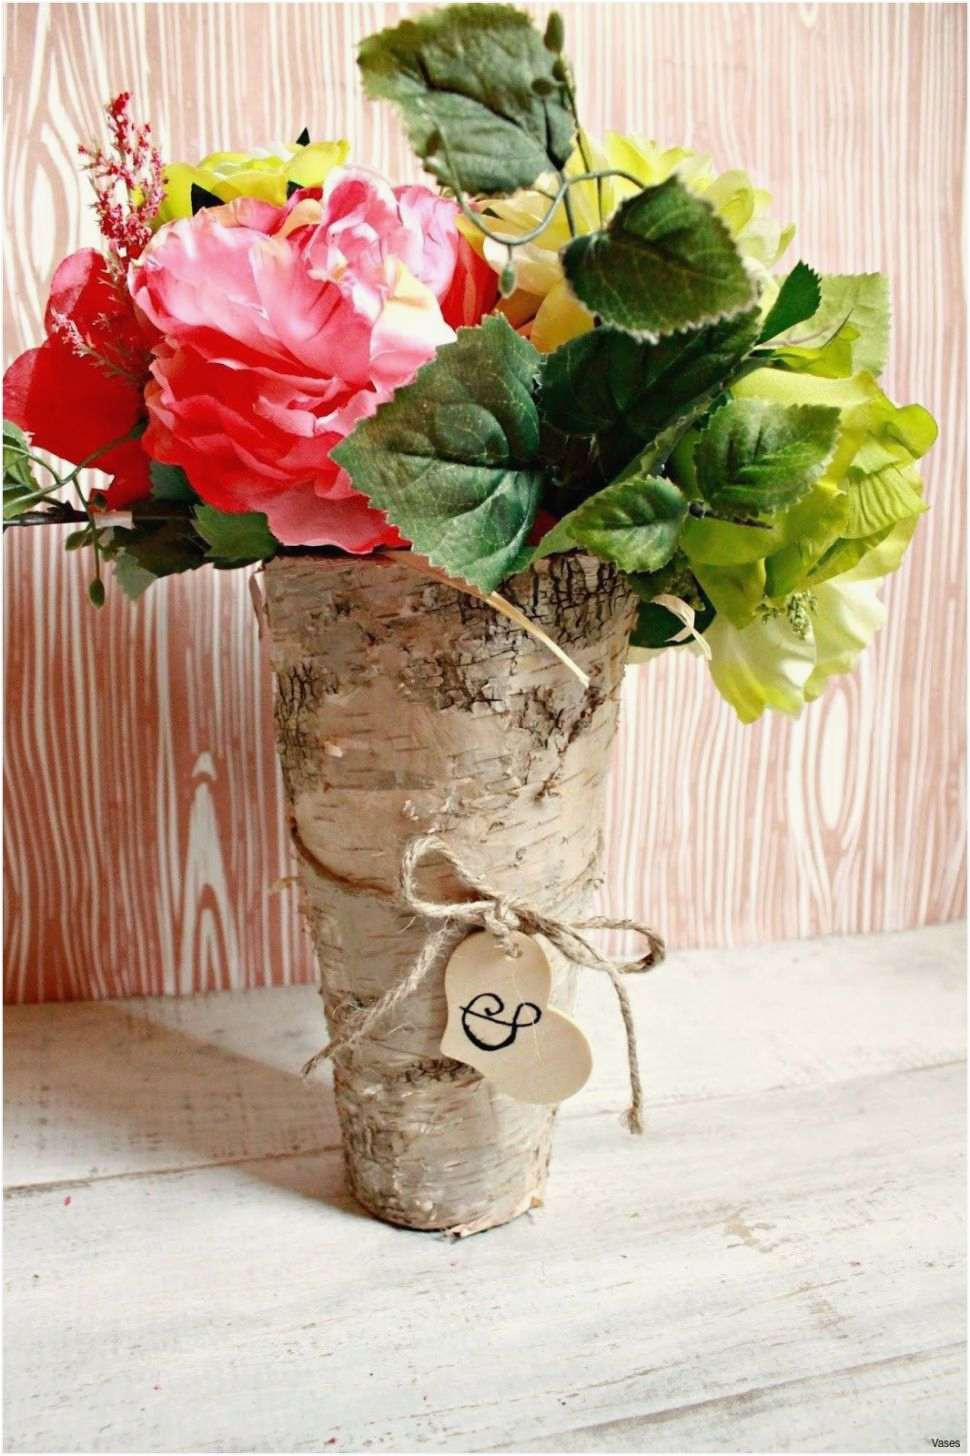 bubble vase centerpiece ideas of the wedding gift gallery unique wedding gifts for friends unusual inside the wedding gift model unique wedding gifts for friends remarkable wooden wedding flowers h sample